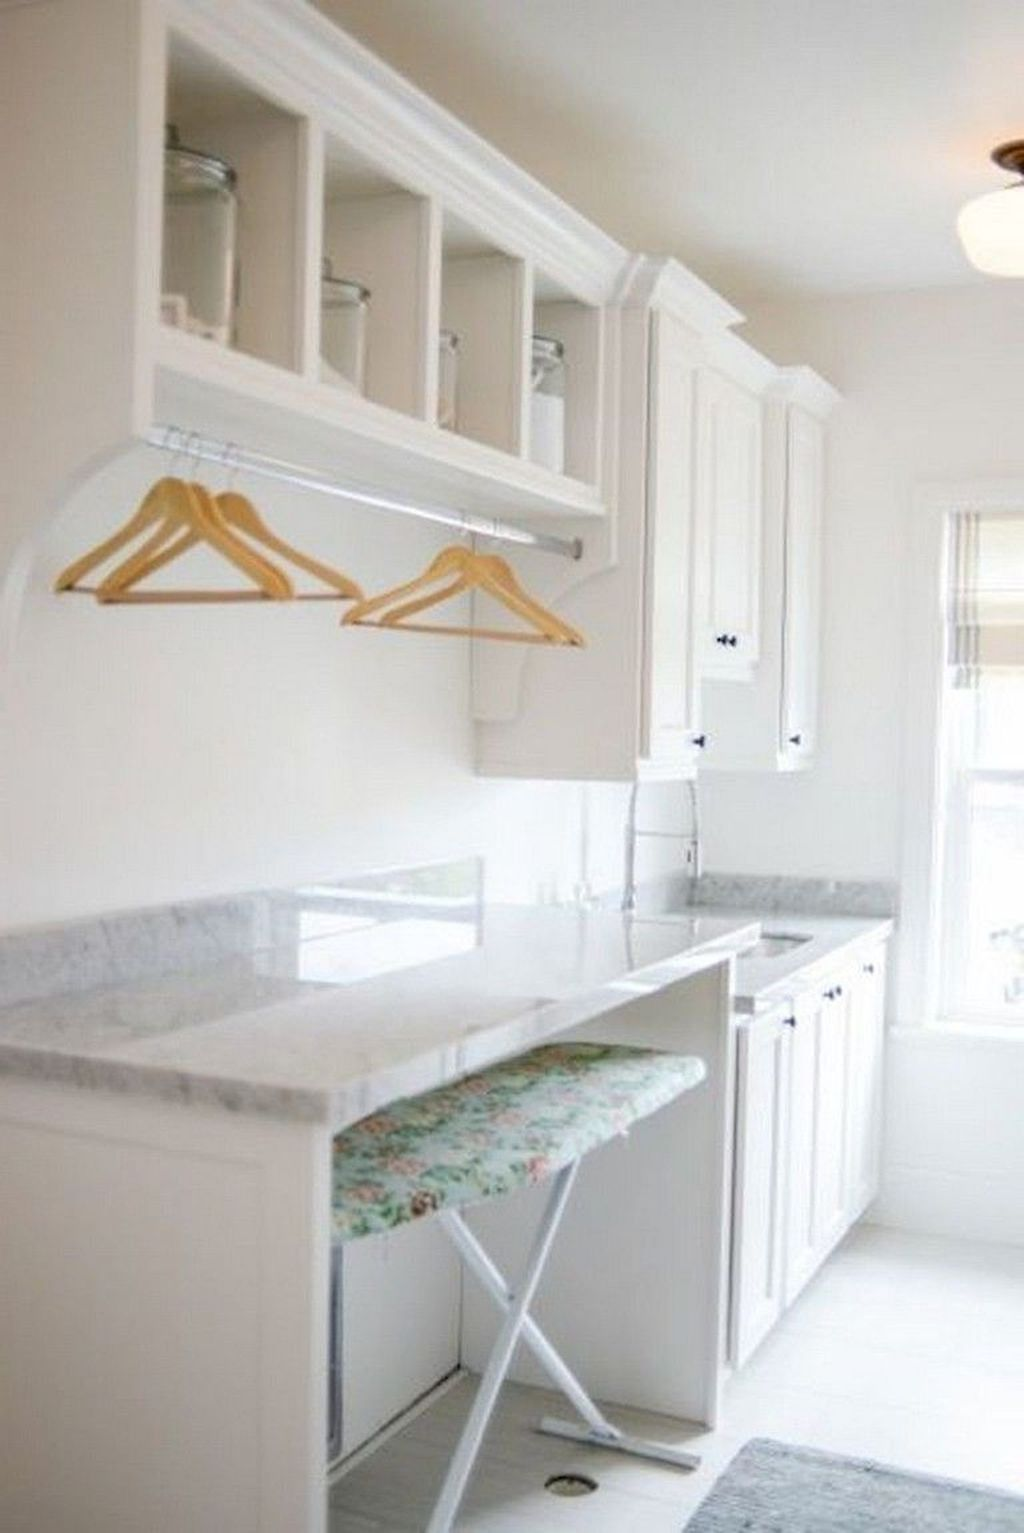 10 laundry room ideas to make your house chore